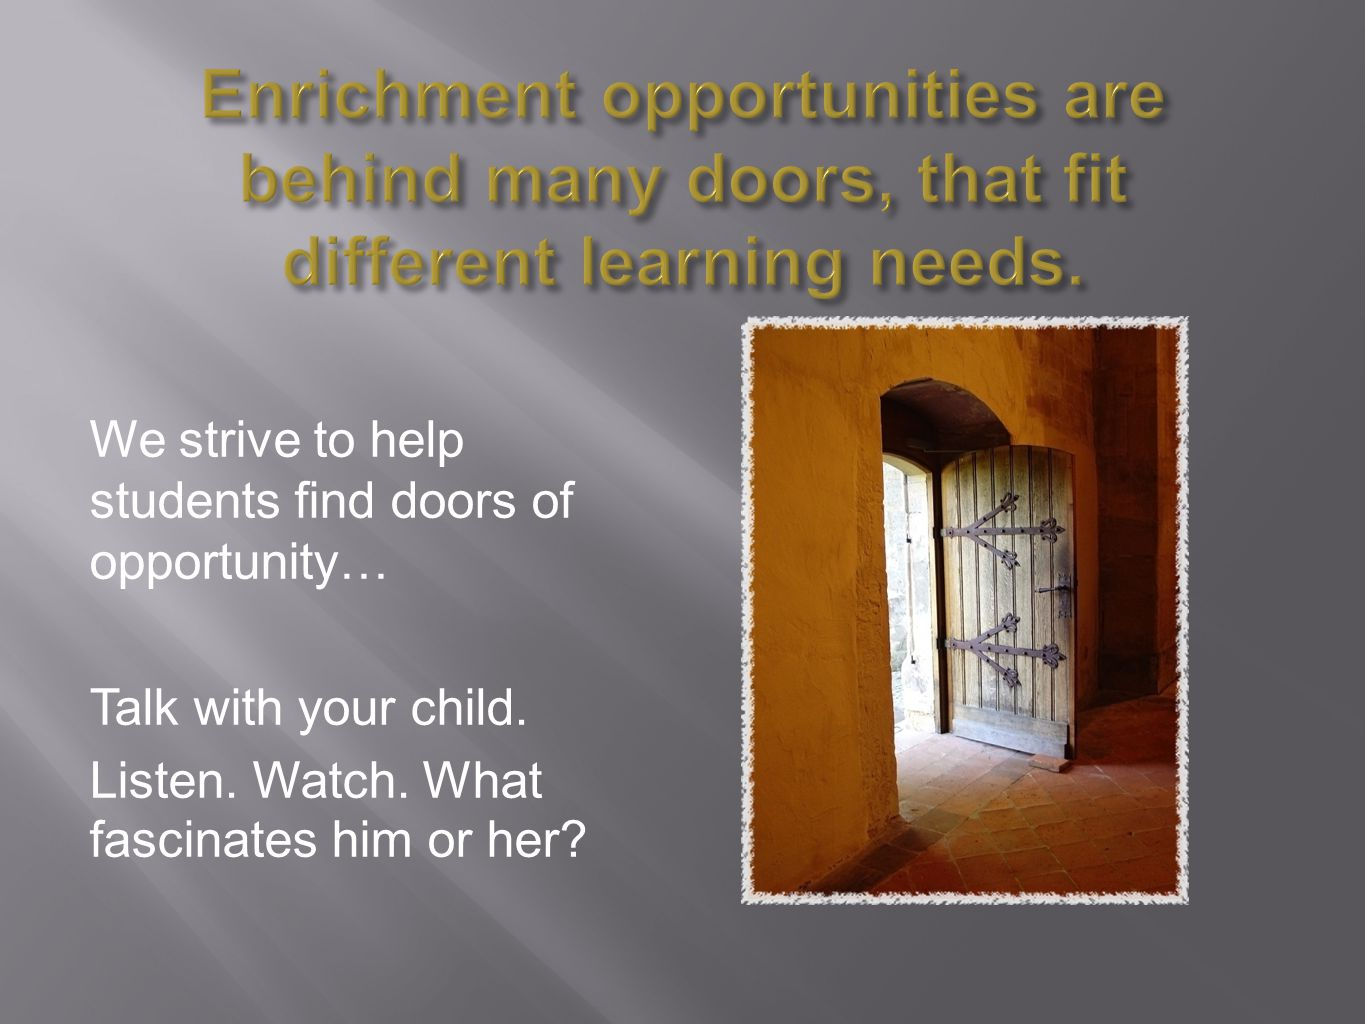 We strive to help students find doors of opportunity… Talk with your child.